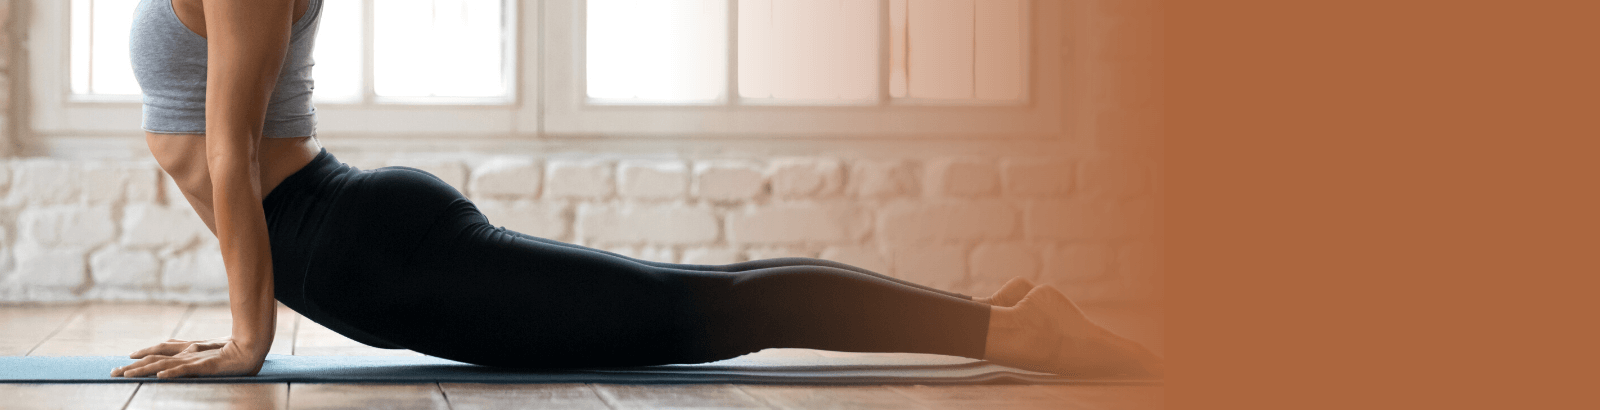 What Are The Top Wellness Trends We'll Be Talking About In 2021?